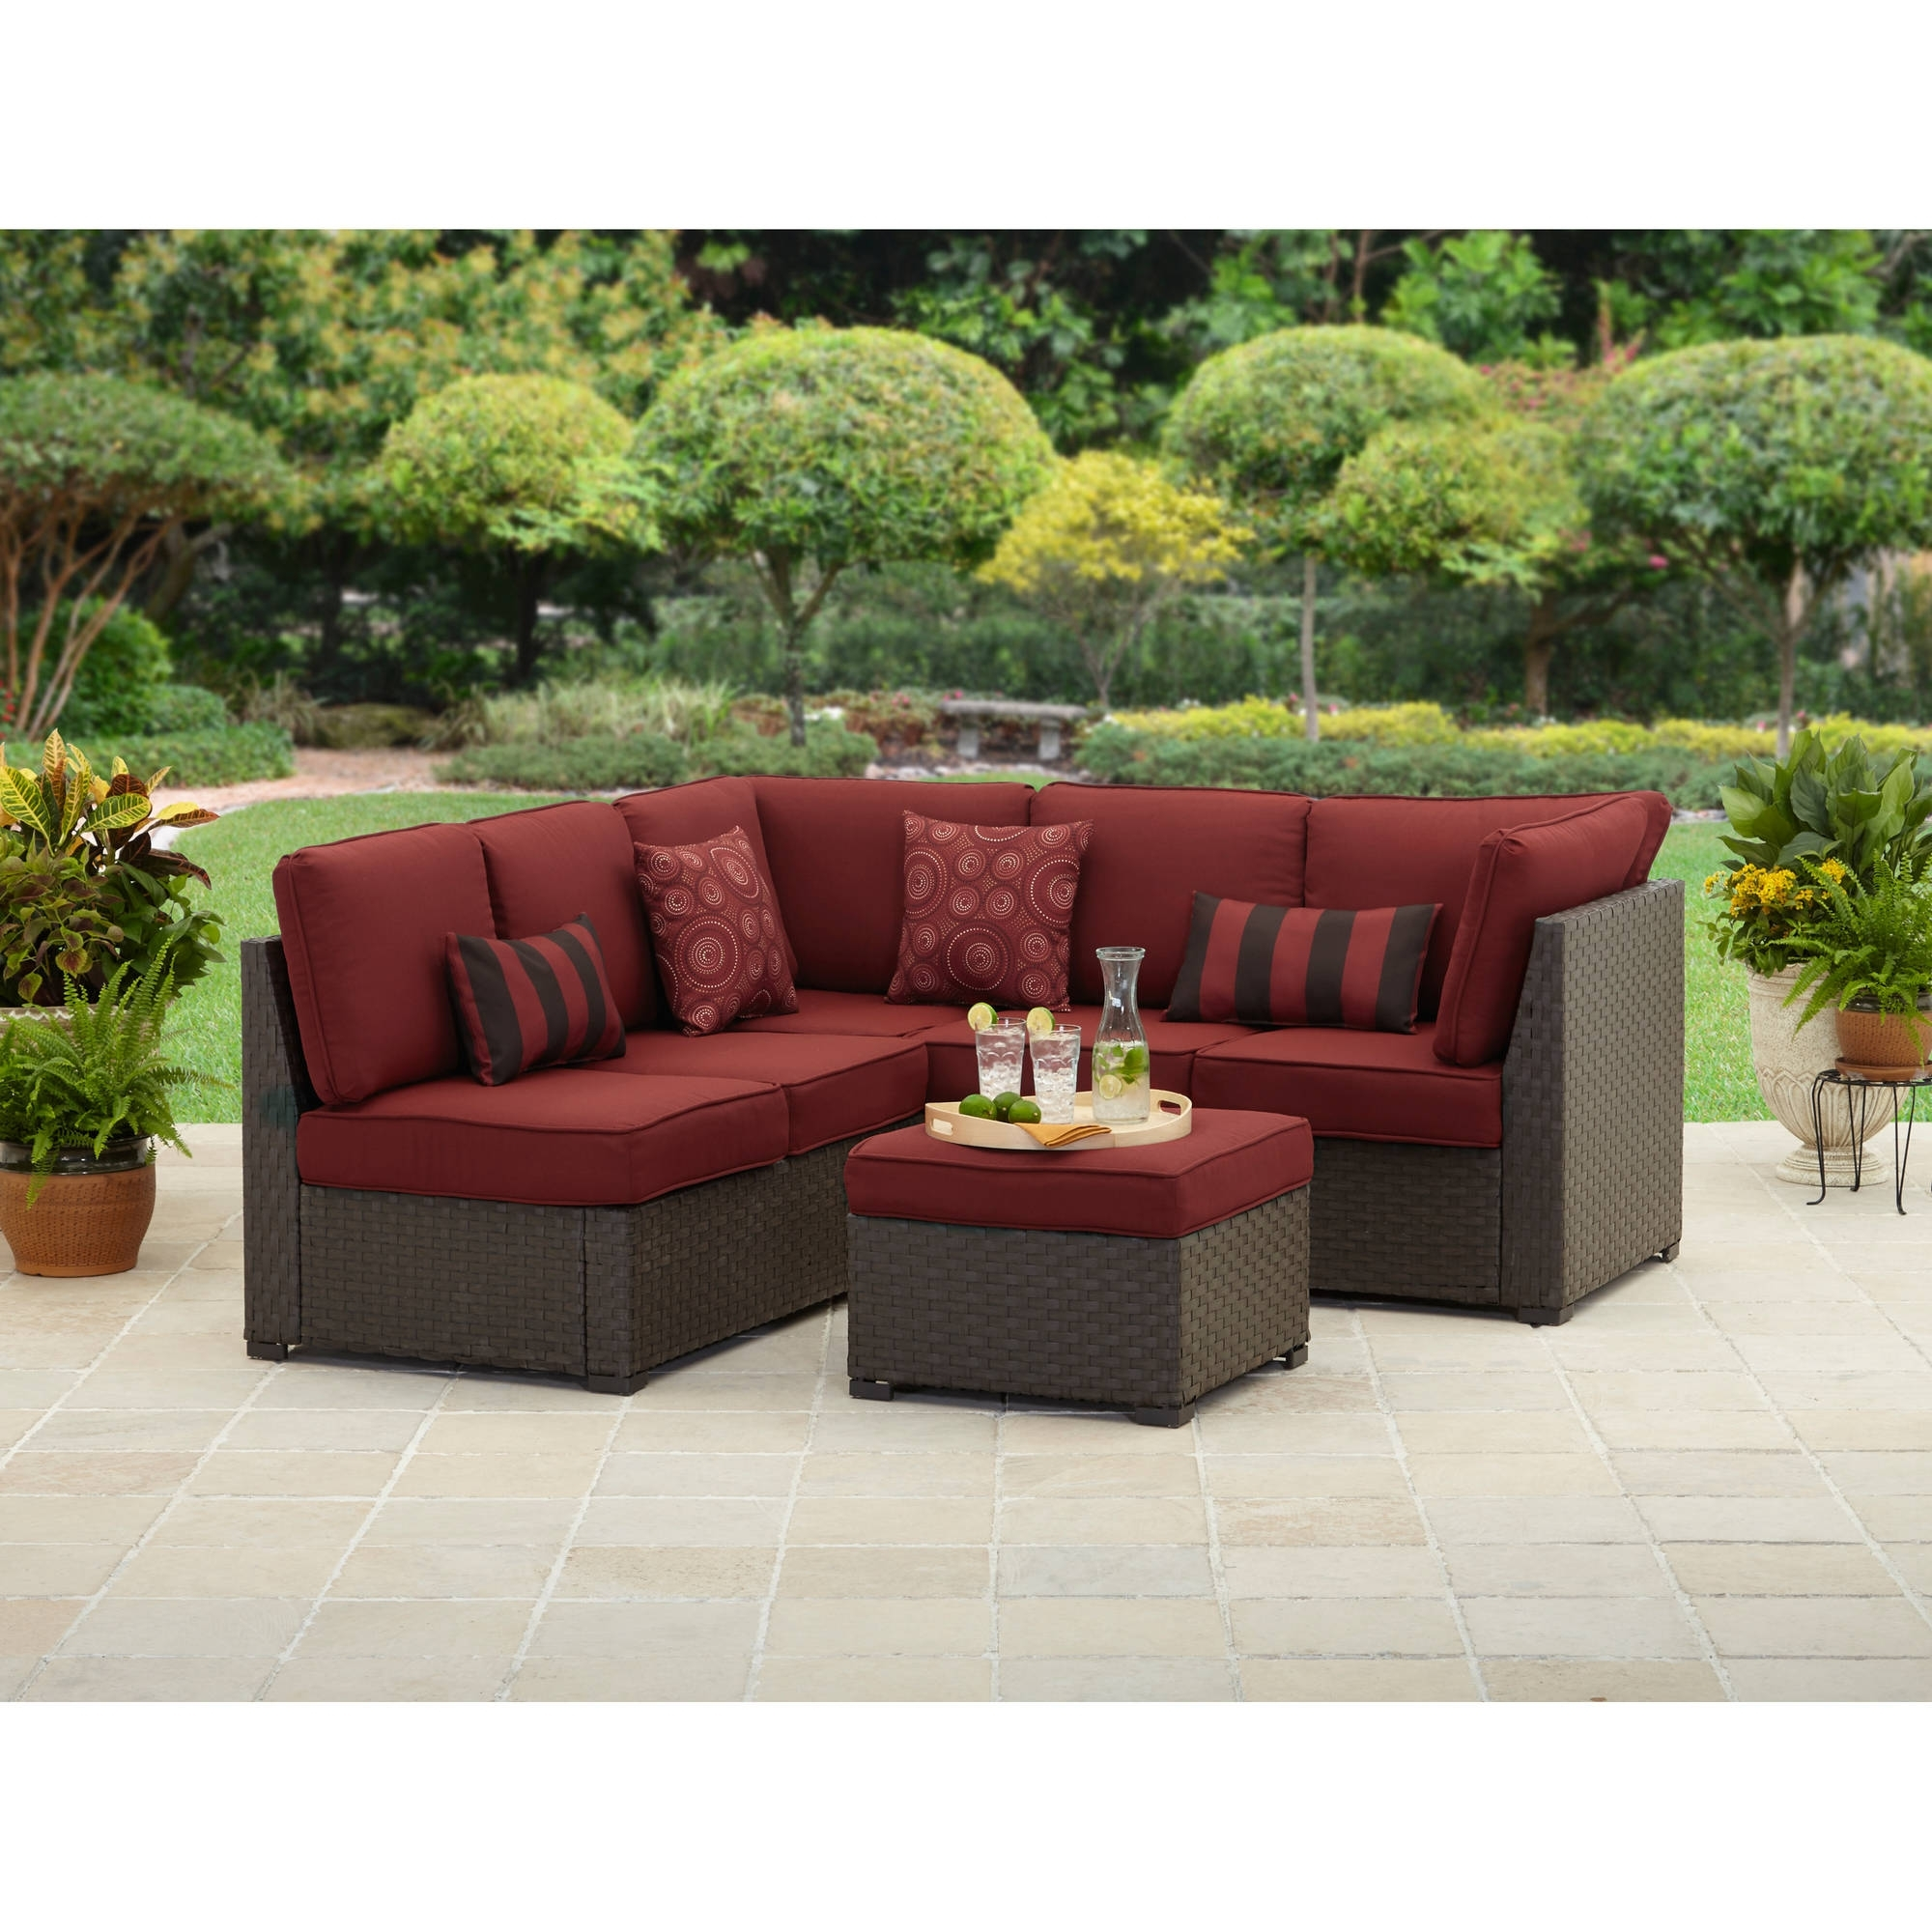 Better Homes And Gardens Rush Valley 3 Piece Outdoor Sectional Regarding Most Popular Patio Conversation Sets With Cushions (View 13 of 15)